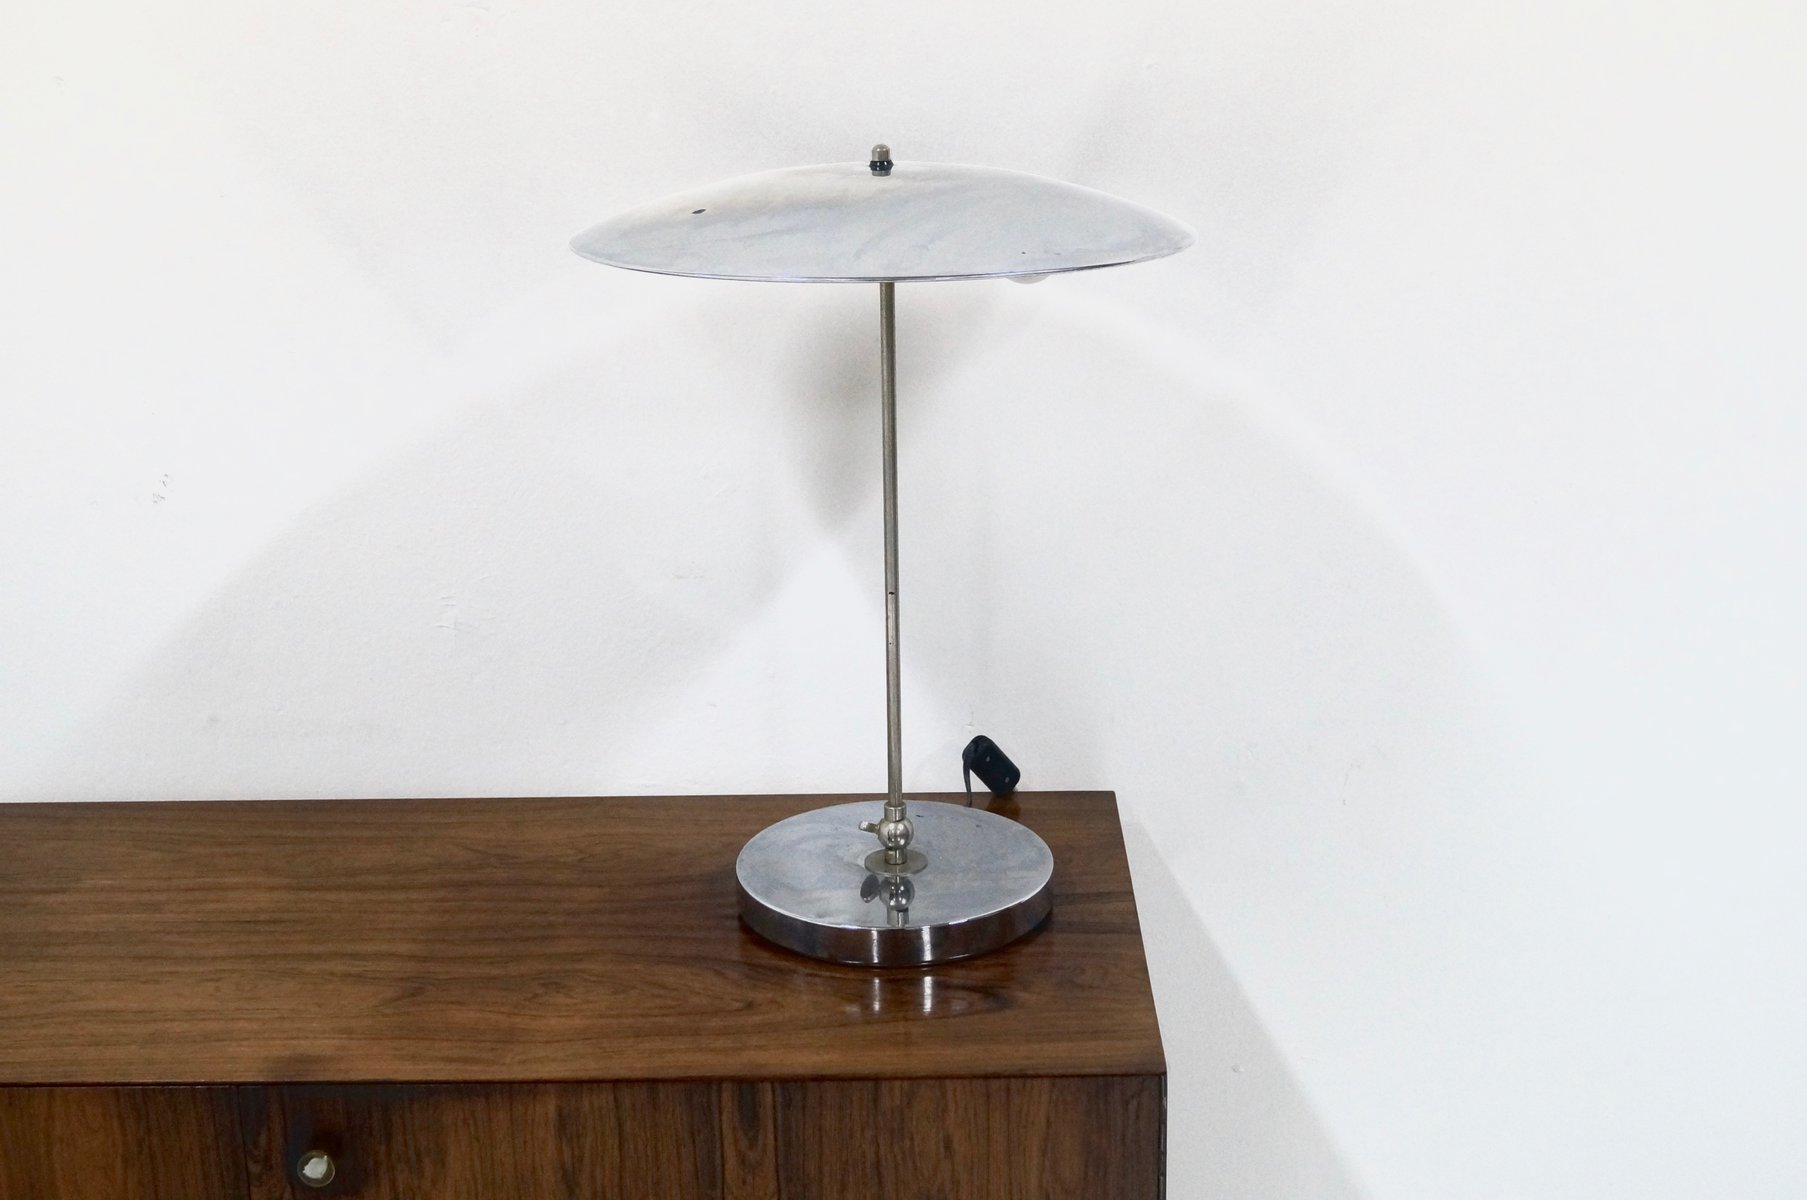 Mid Century Dutch Chrome Table Lamp By Hala Zeist, 1960s For Sale At Pamono